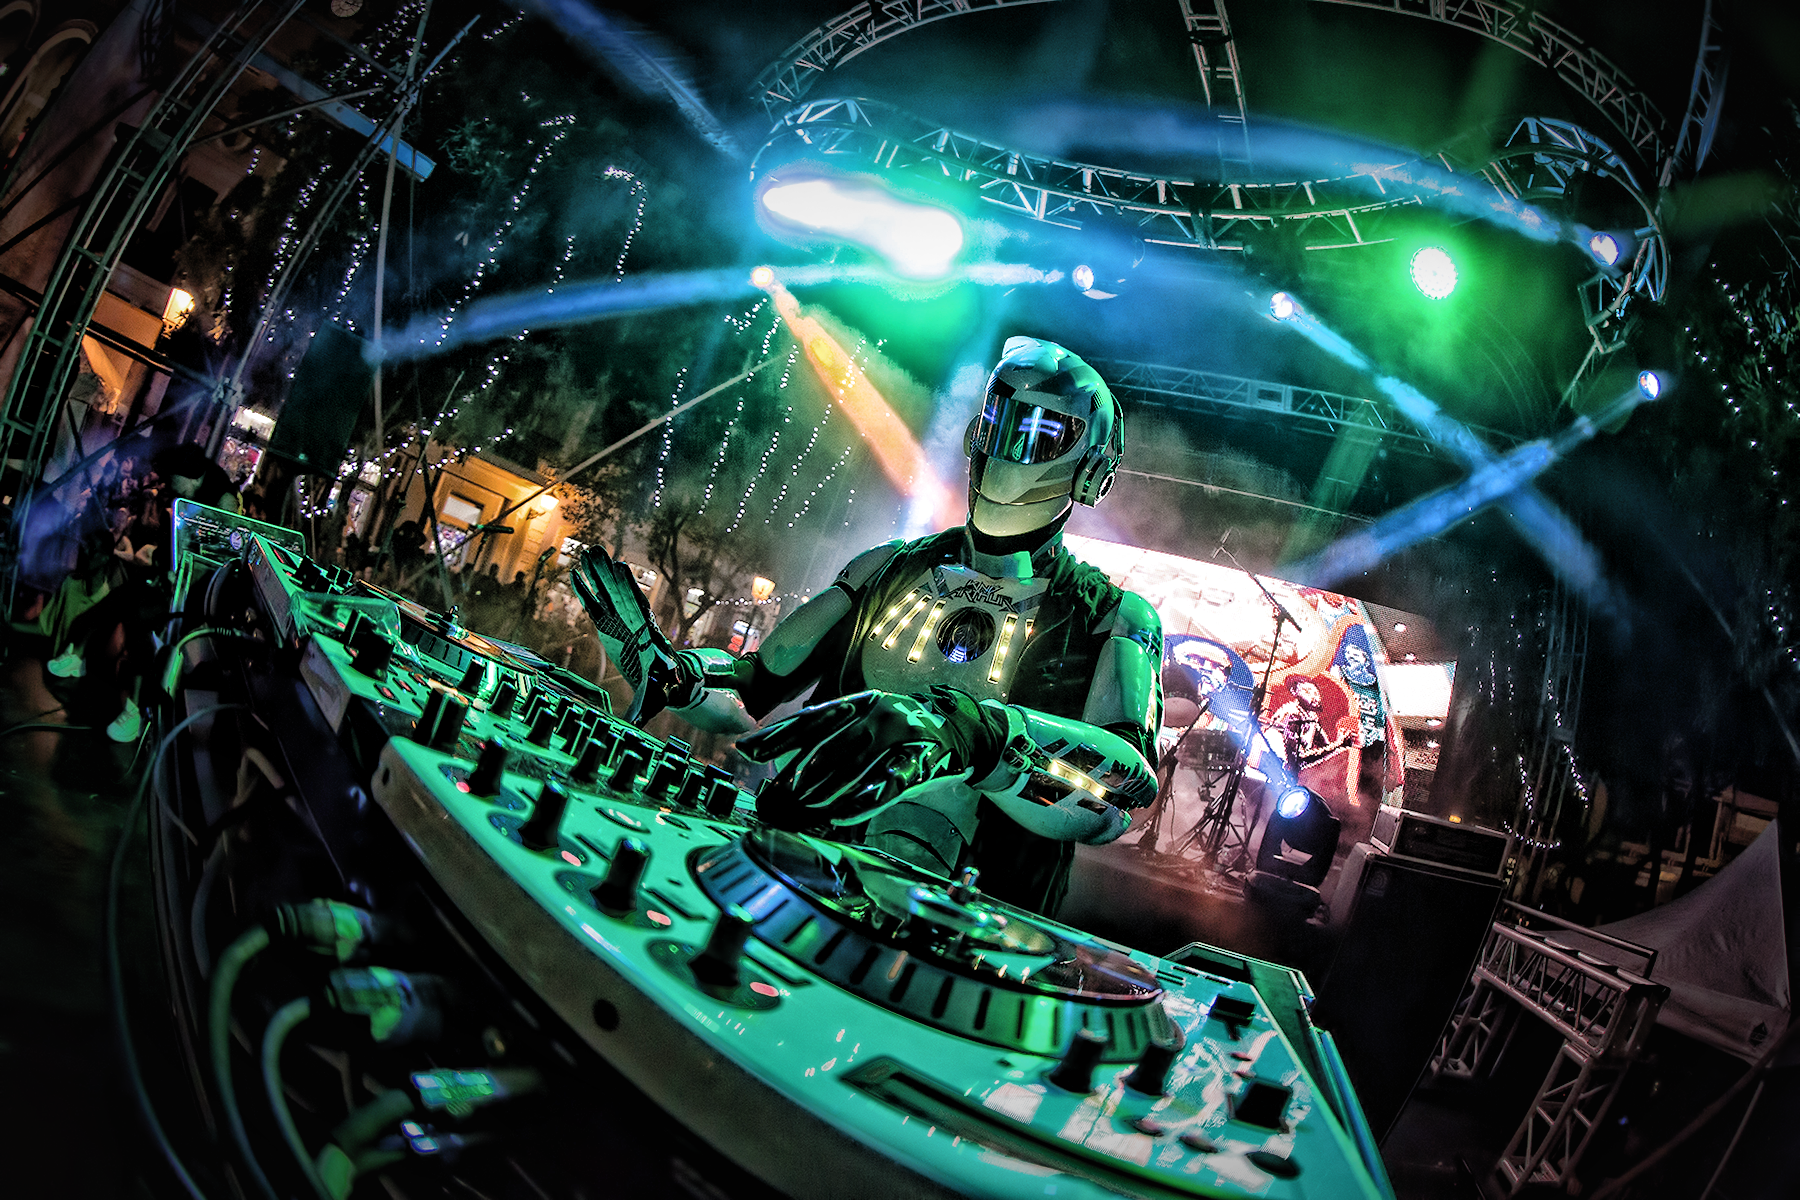 THIS DJ BUILDS HIS OWN ROBOT SUITS AND SPACESHIP BOOTHS